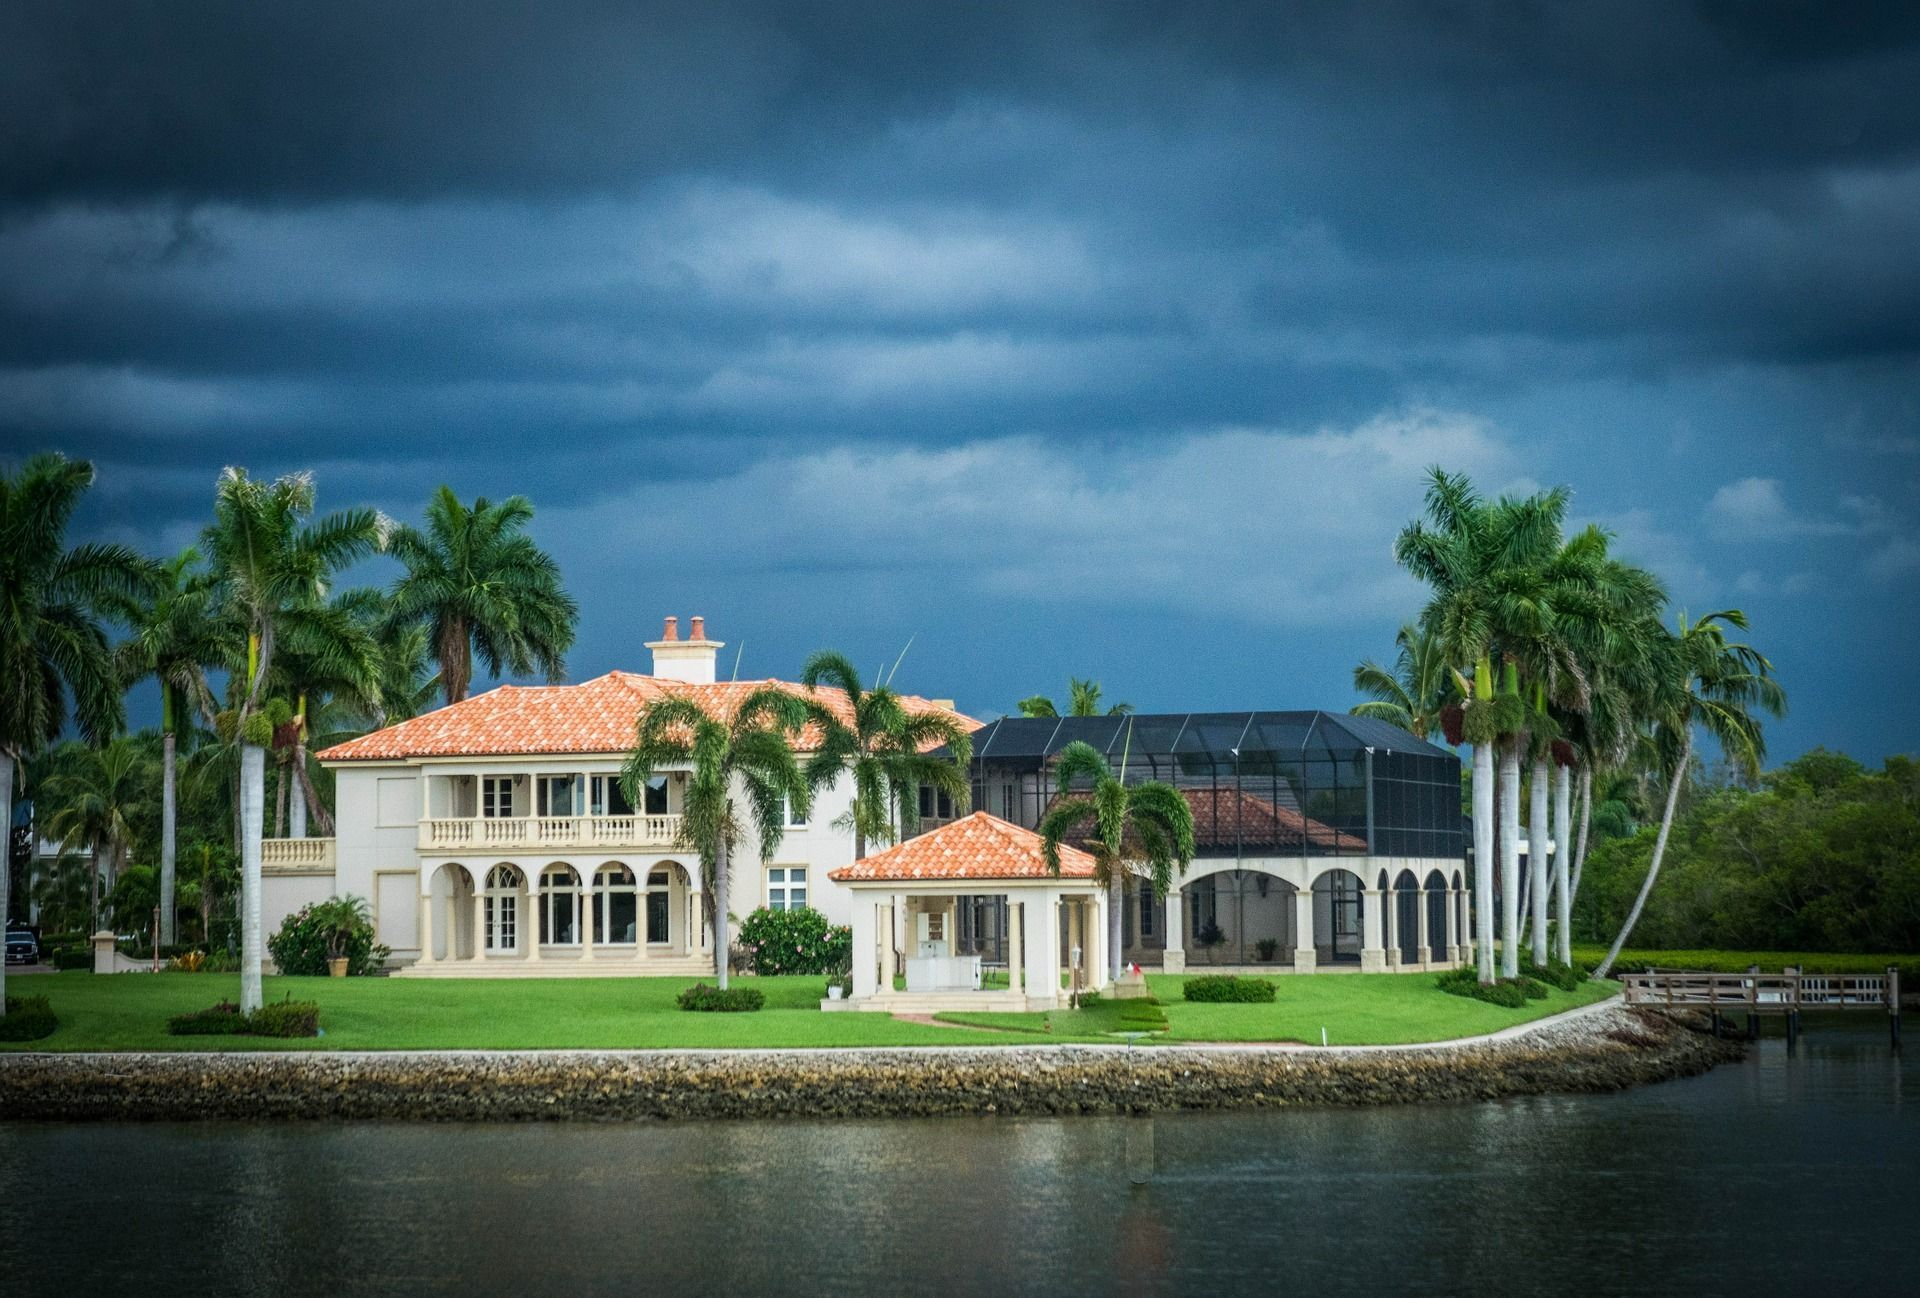 The Luxury Homes Market on the Rise. Sales and for high